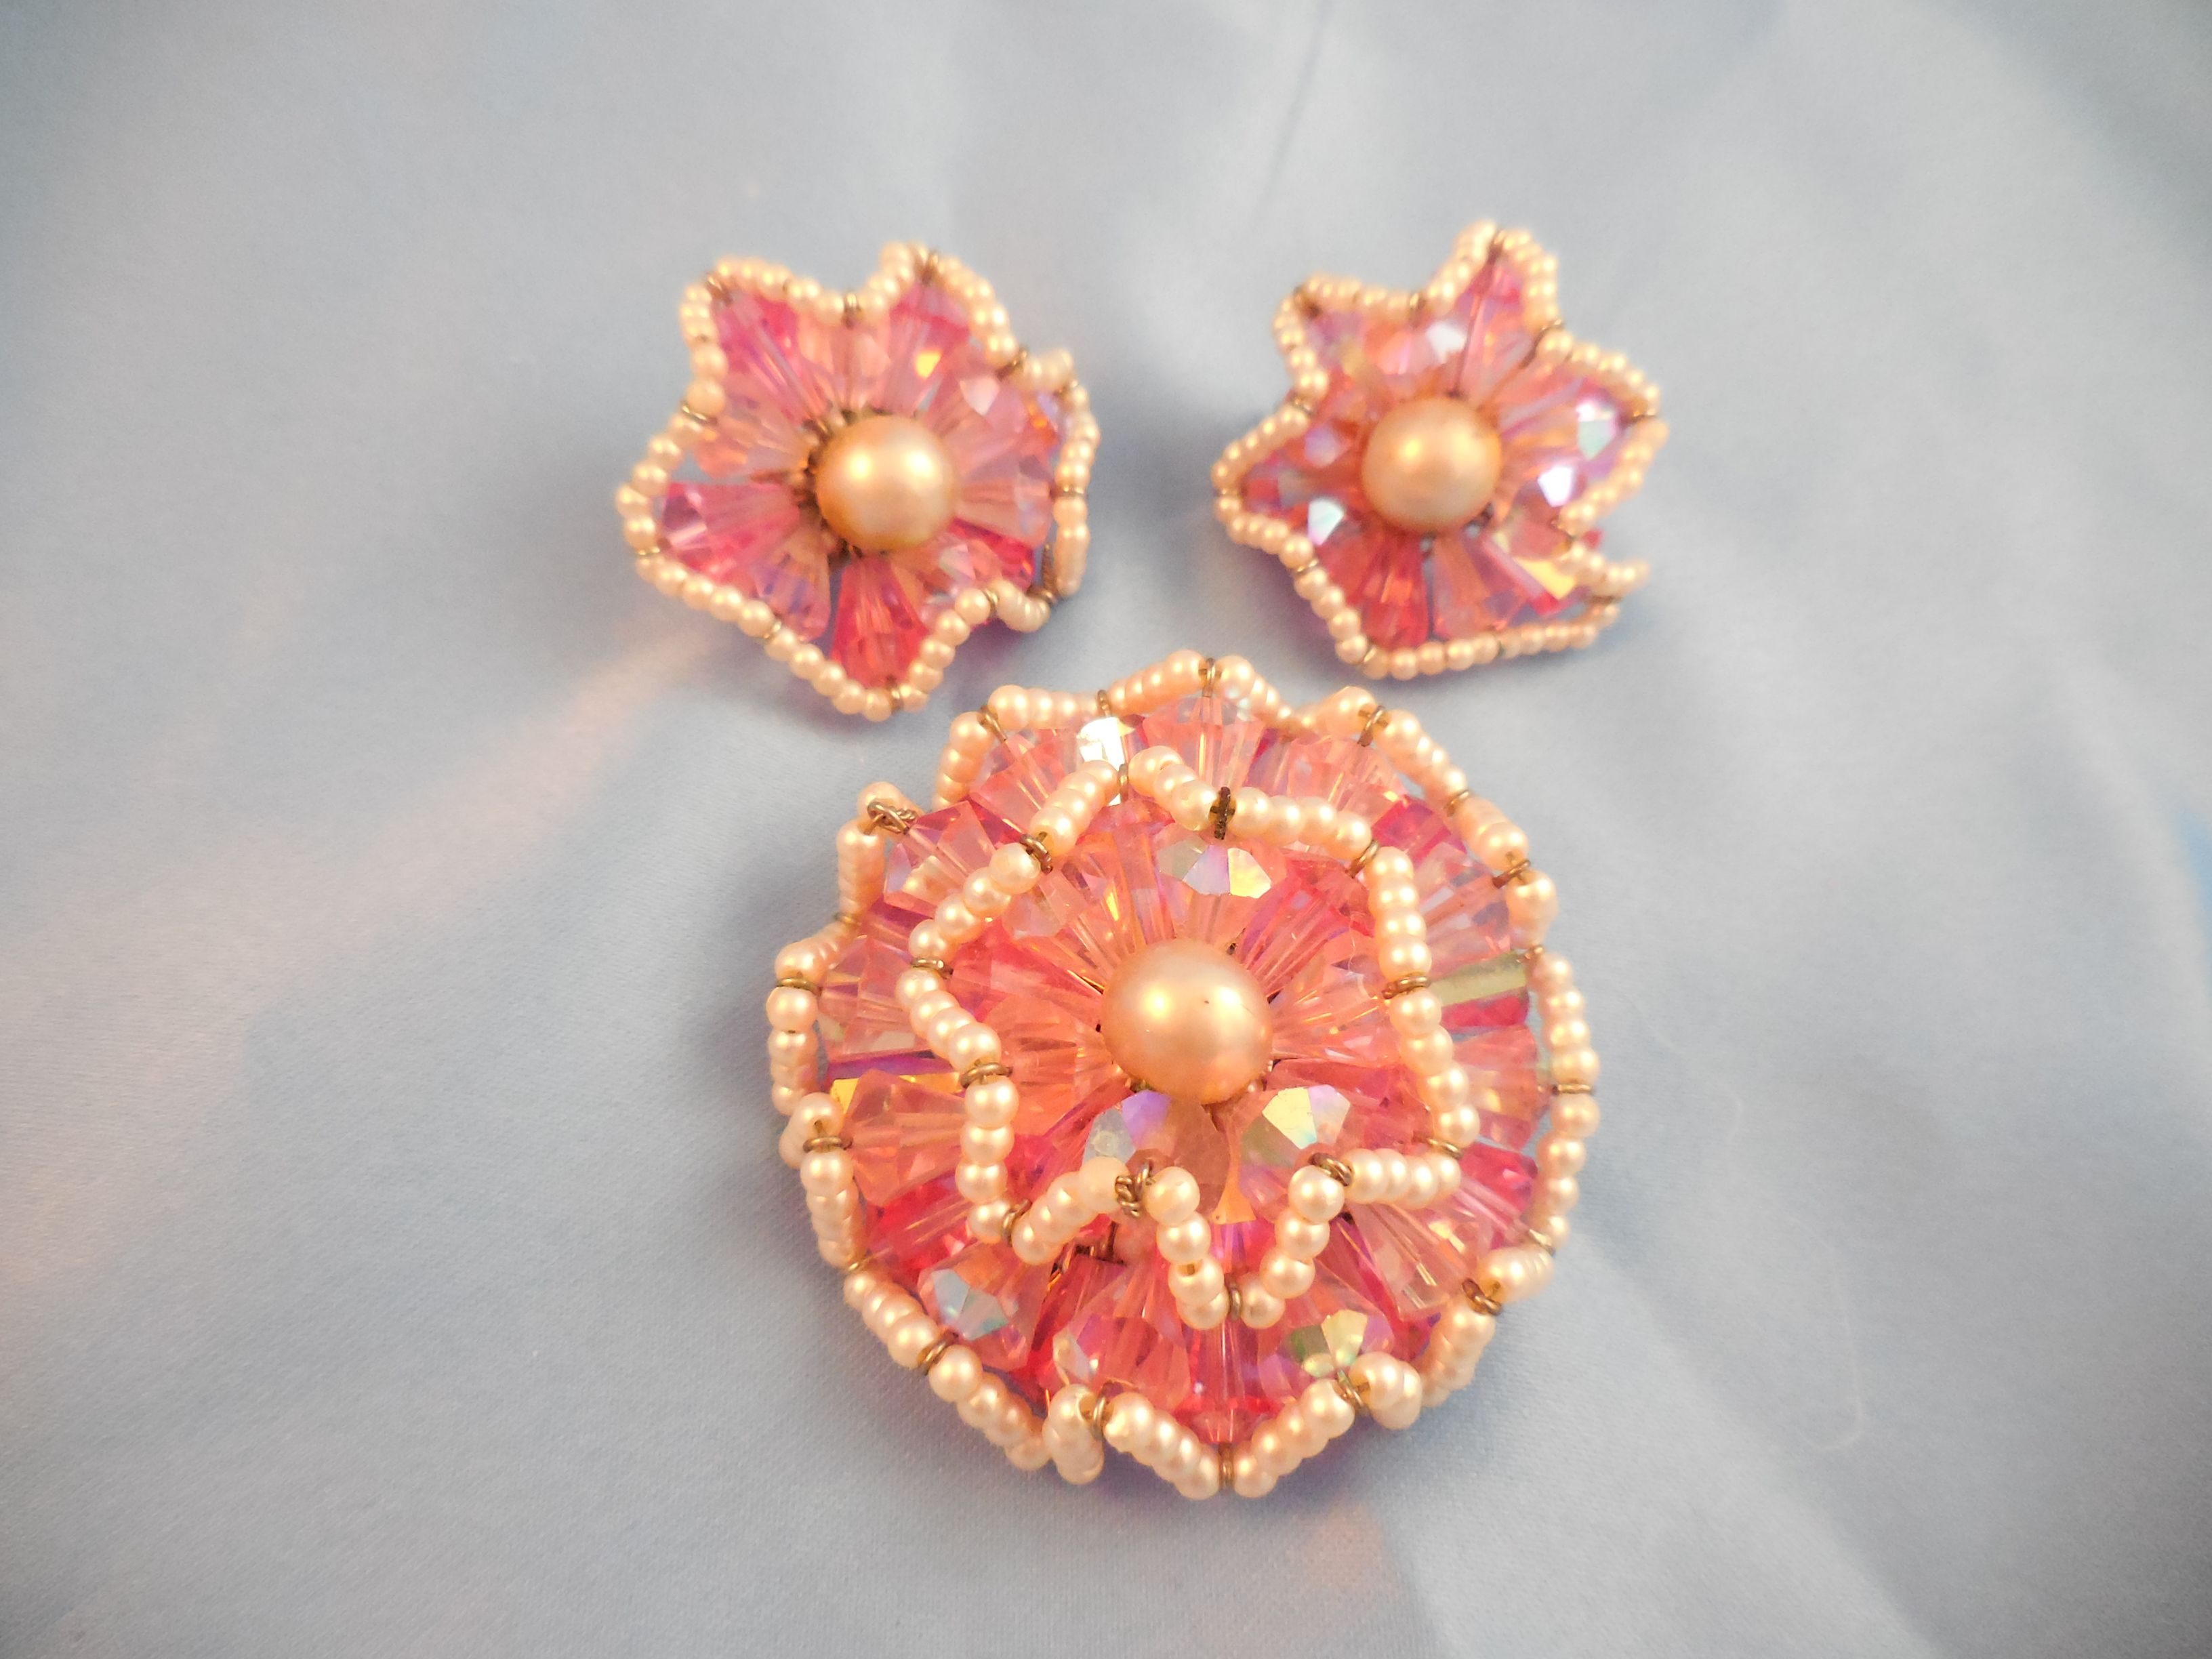 Vendome Pink and Pearl Ruffle Pin.  It was advertised in 1964